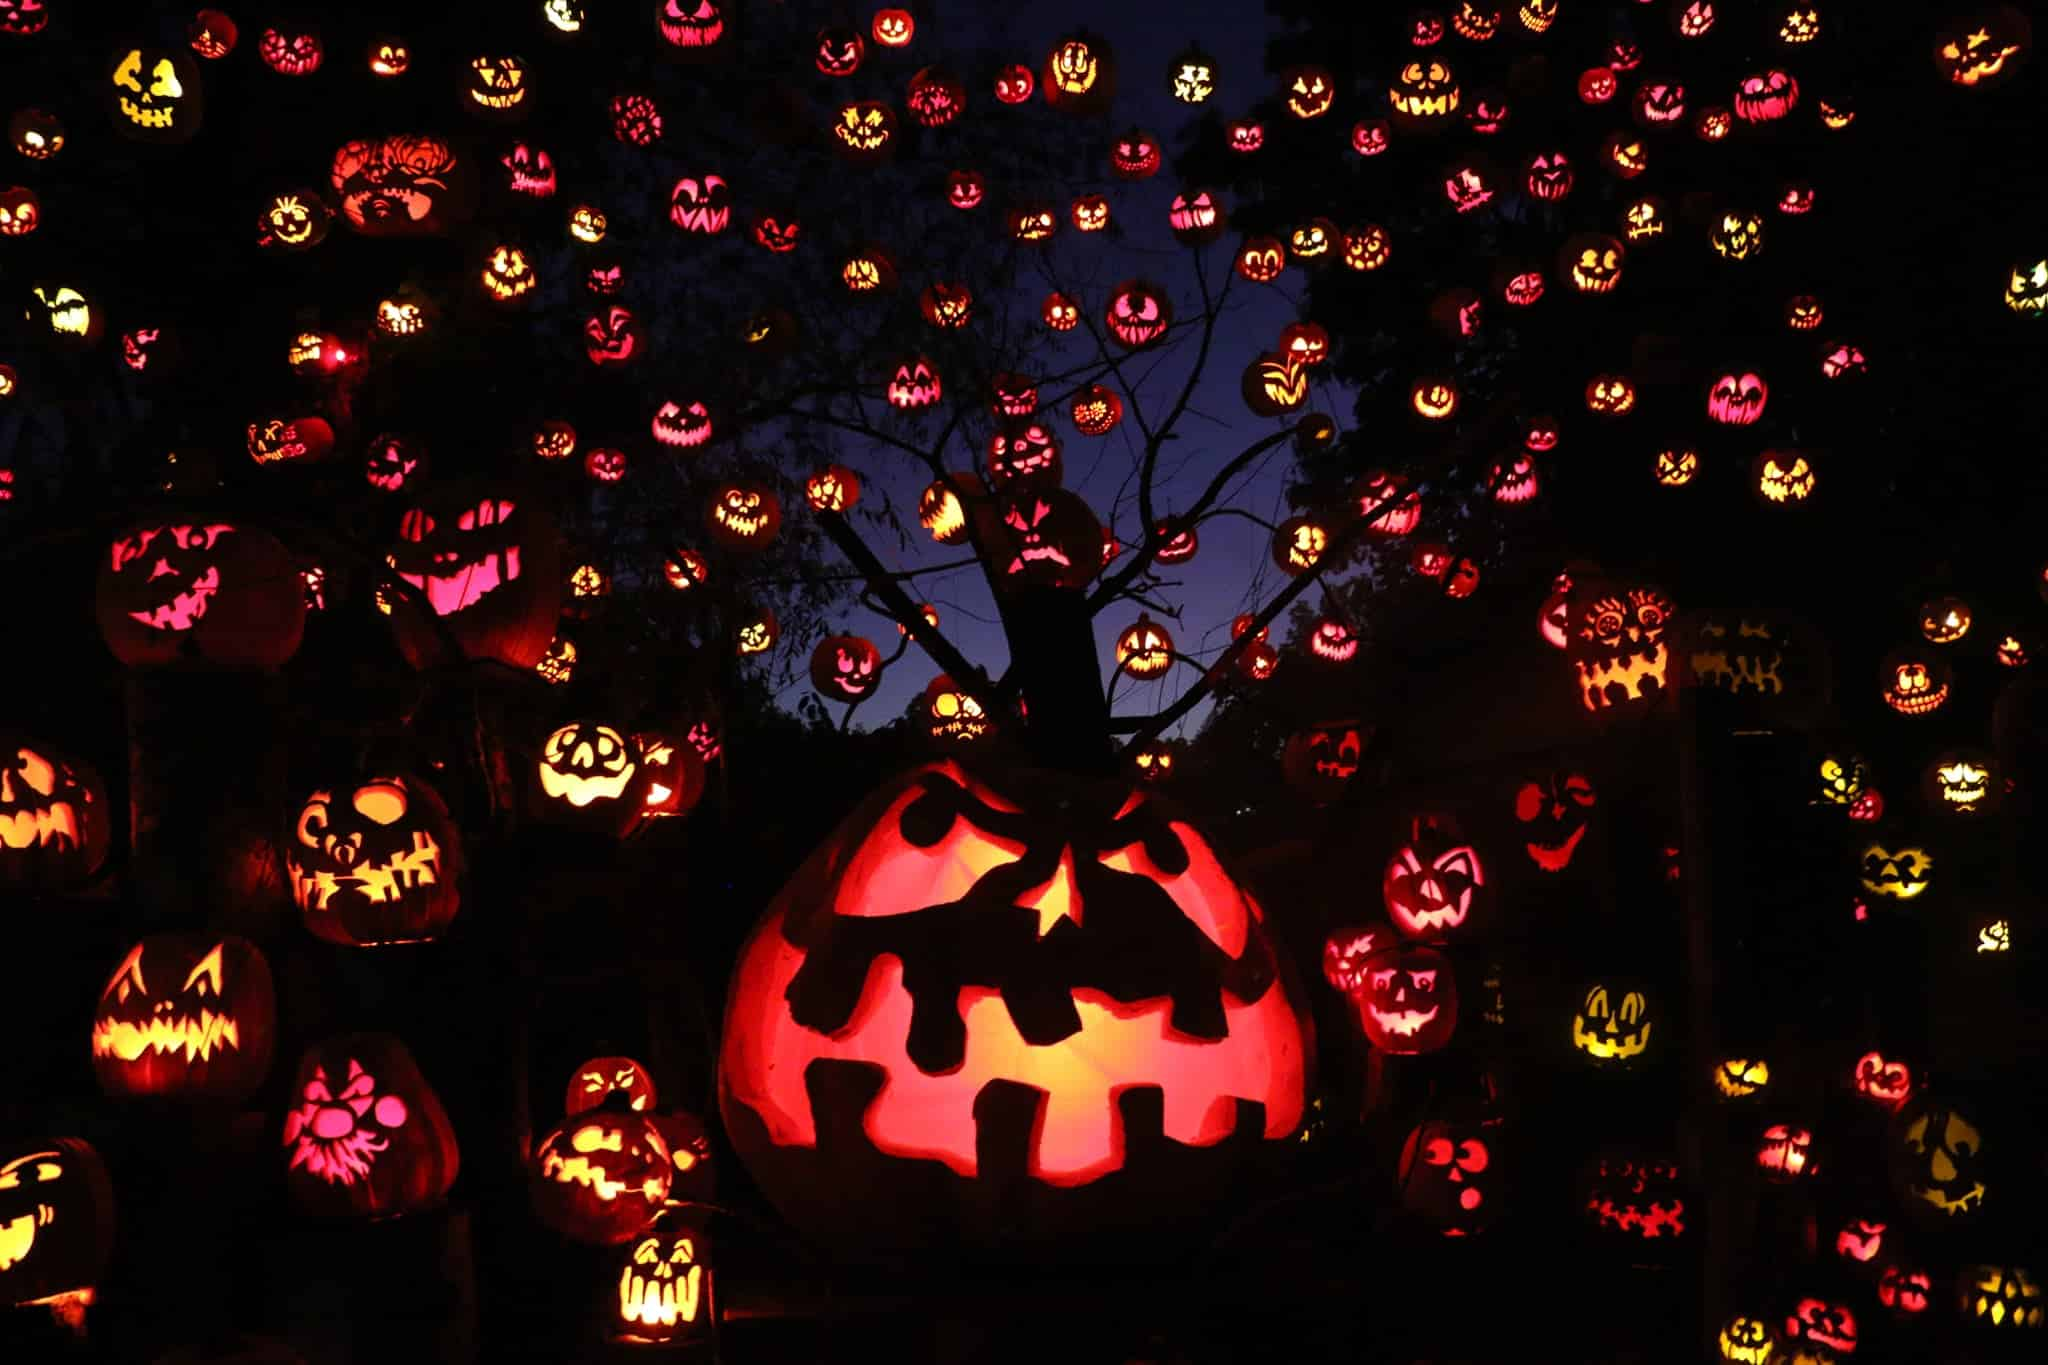 [CREDIT: Roger Williams Park] In this week's Warwick Weekend roundup, the Jack-O-Lantern Spectacular at the Roger Williams Park Zoo is back this year through Oct. 31.